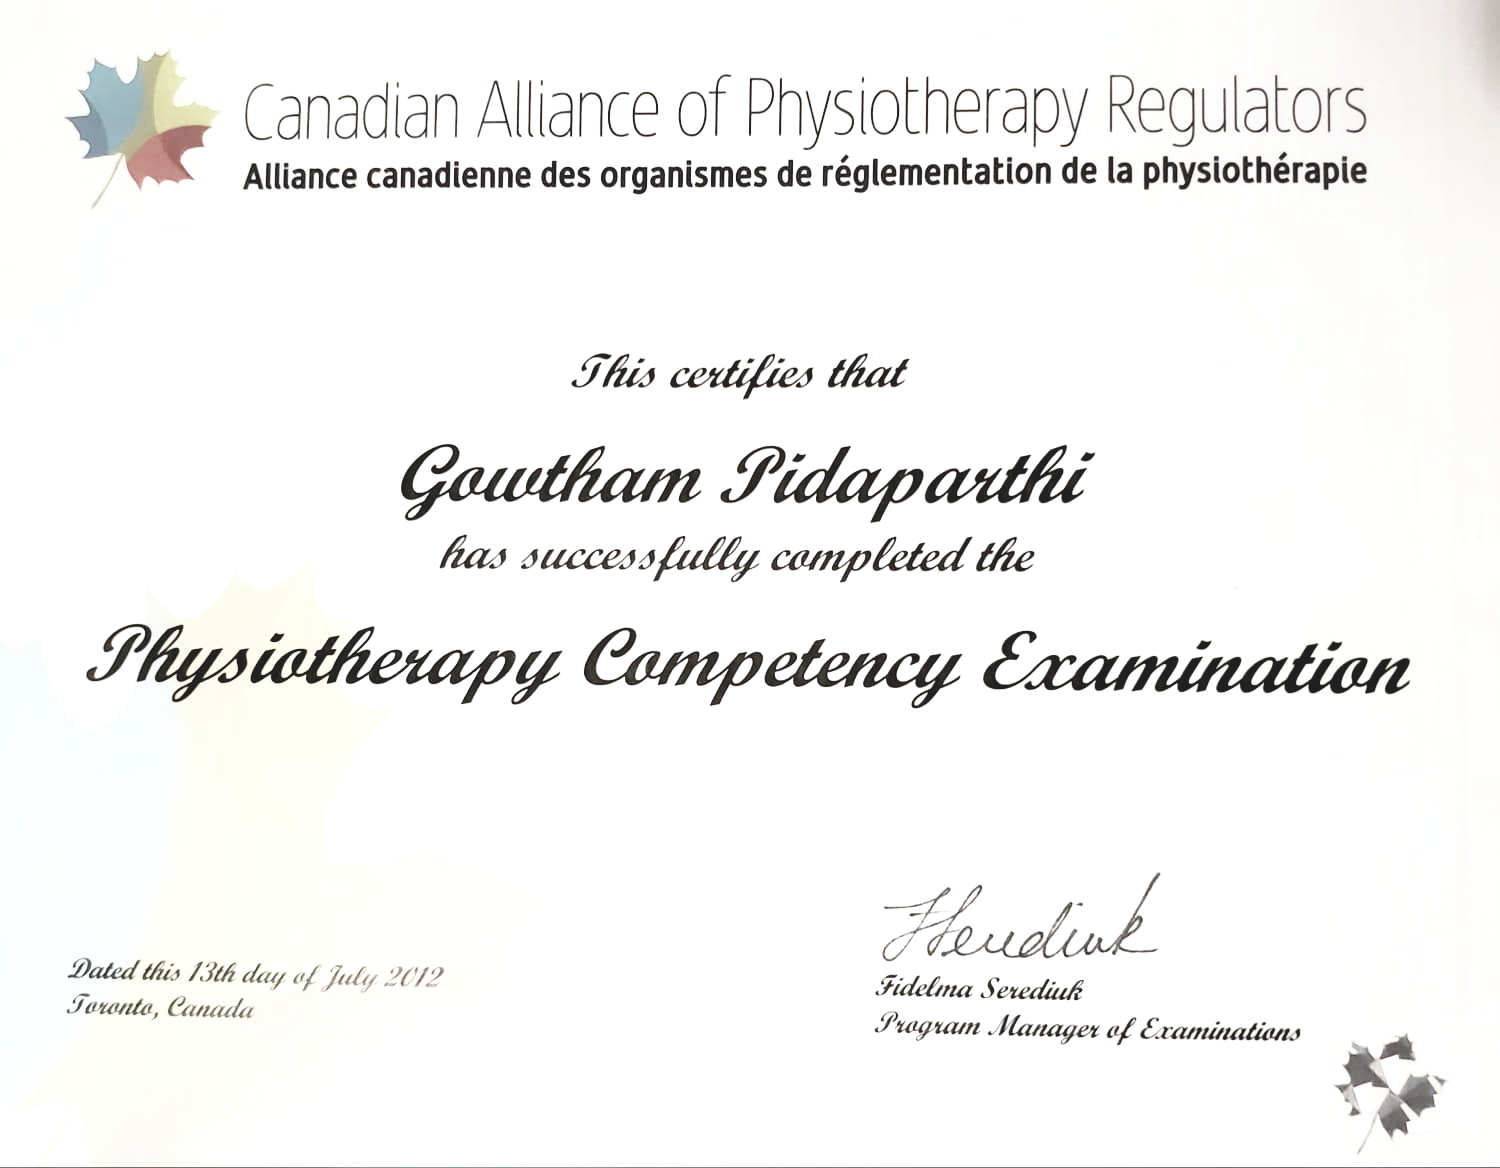 Physiotherapy Competency Examination Certification Gowtham